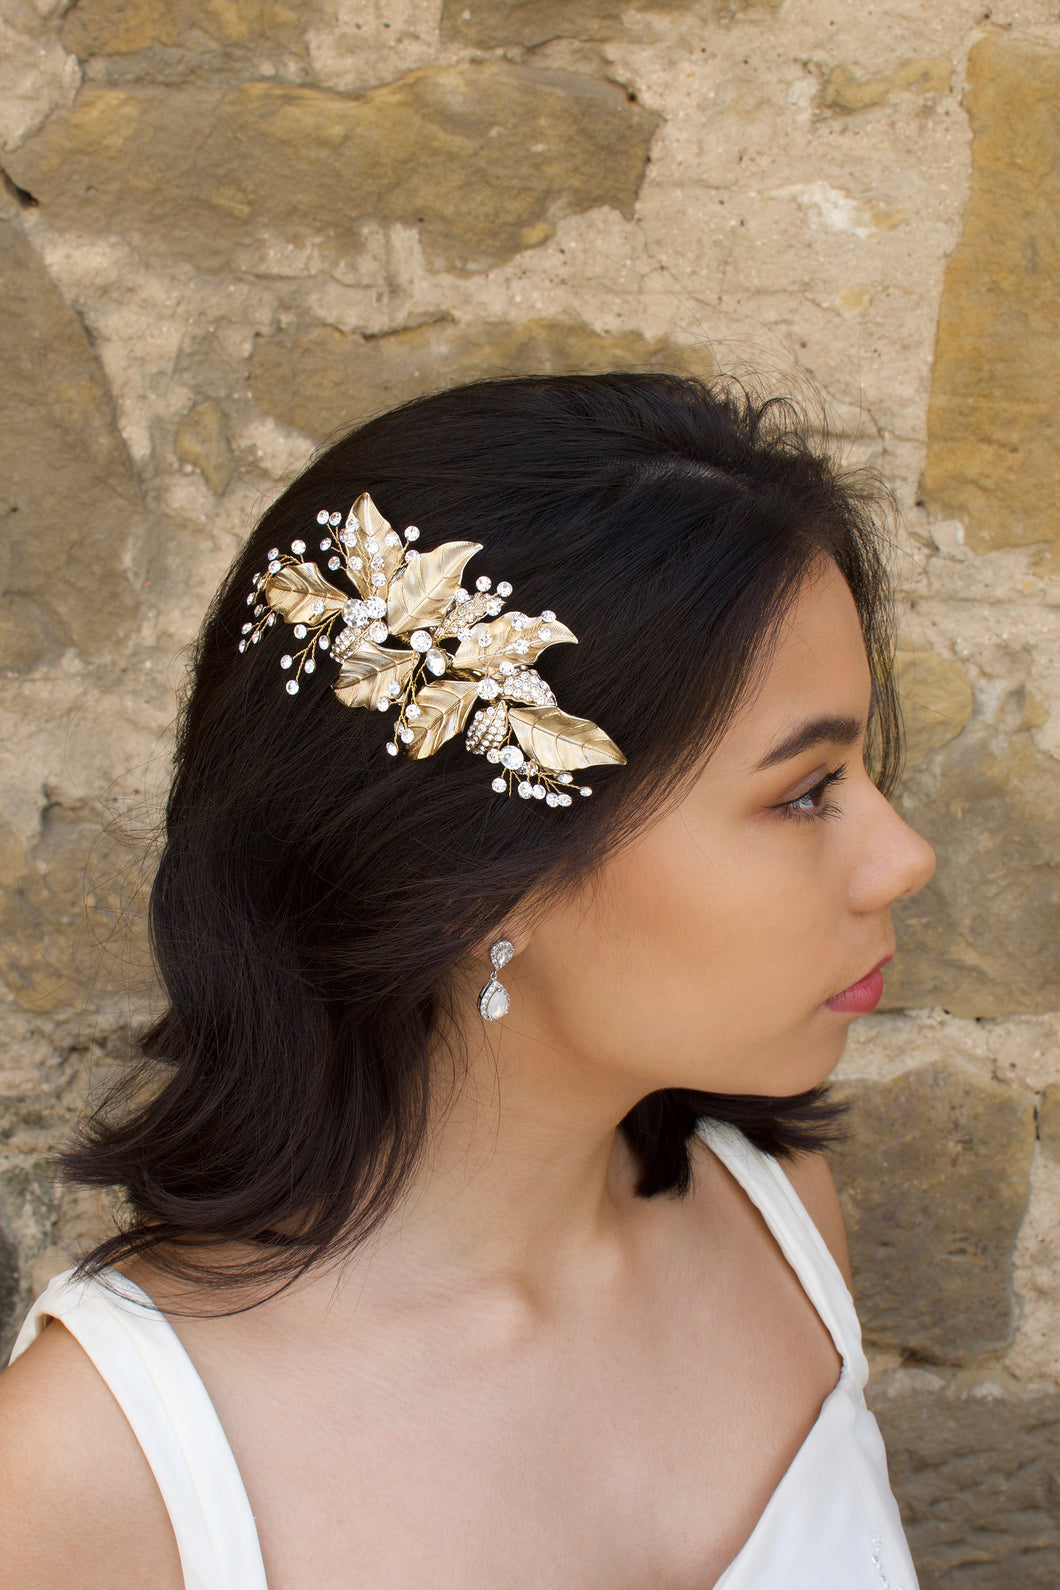 Gold leaf side comb worn by a dark hair bride standing beside a stone wall.